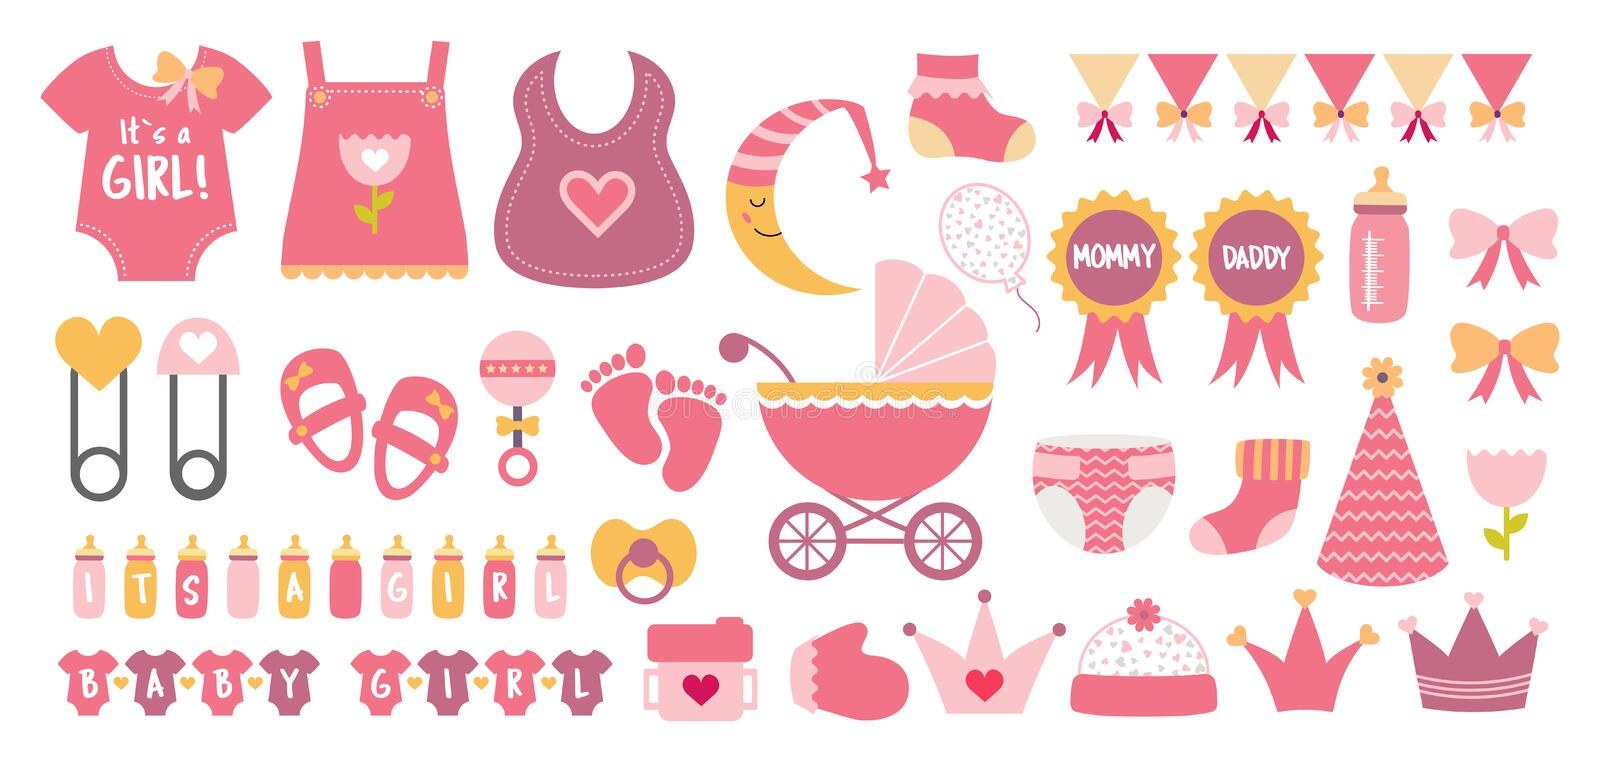 Baby shower icon vector set pastel pink colors stock illustration